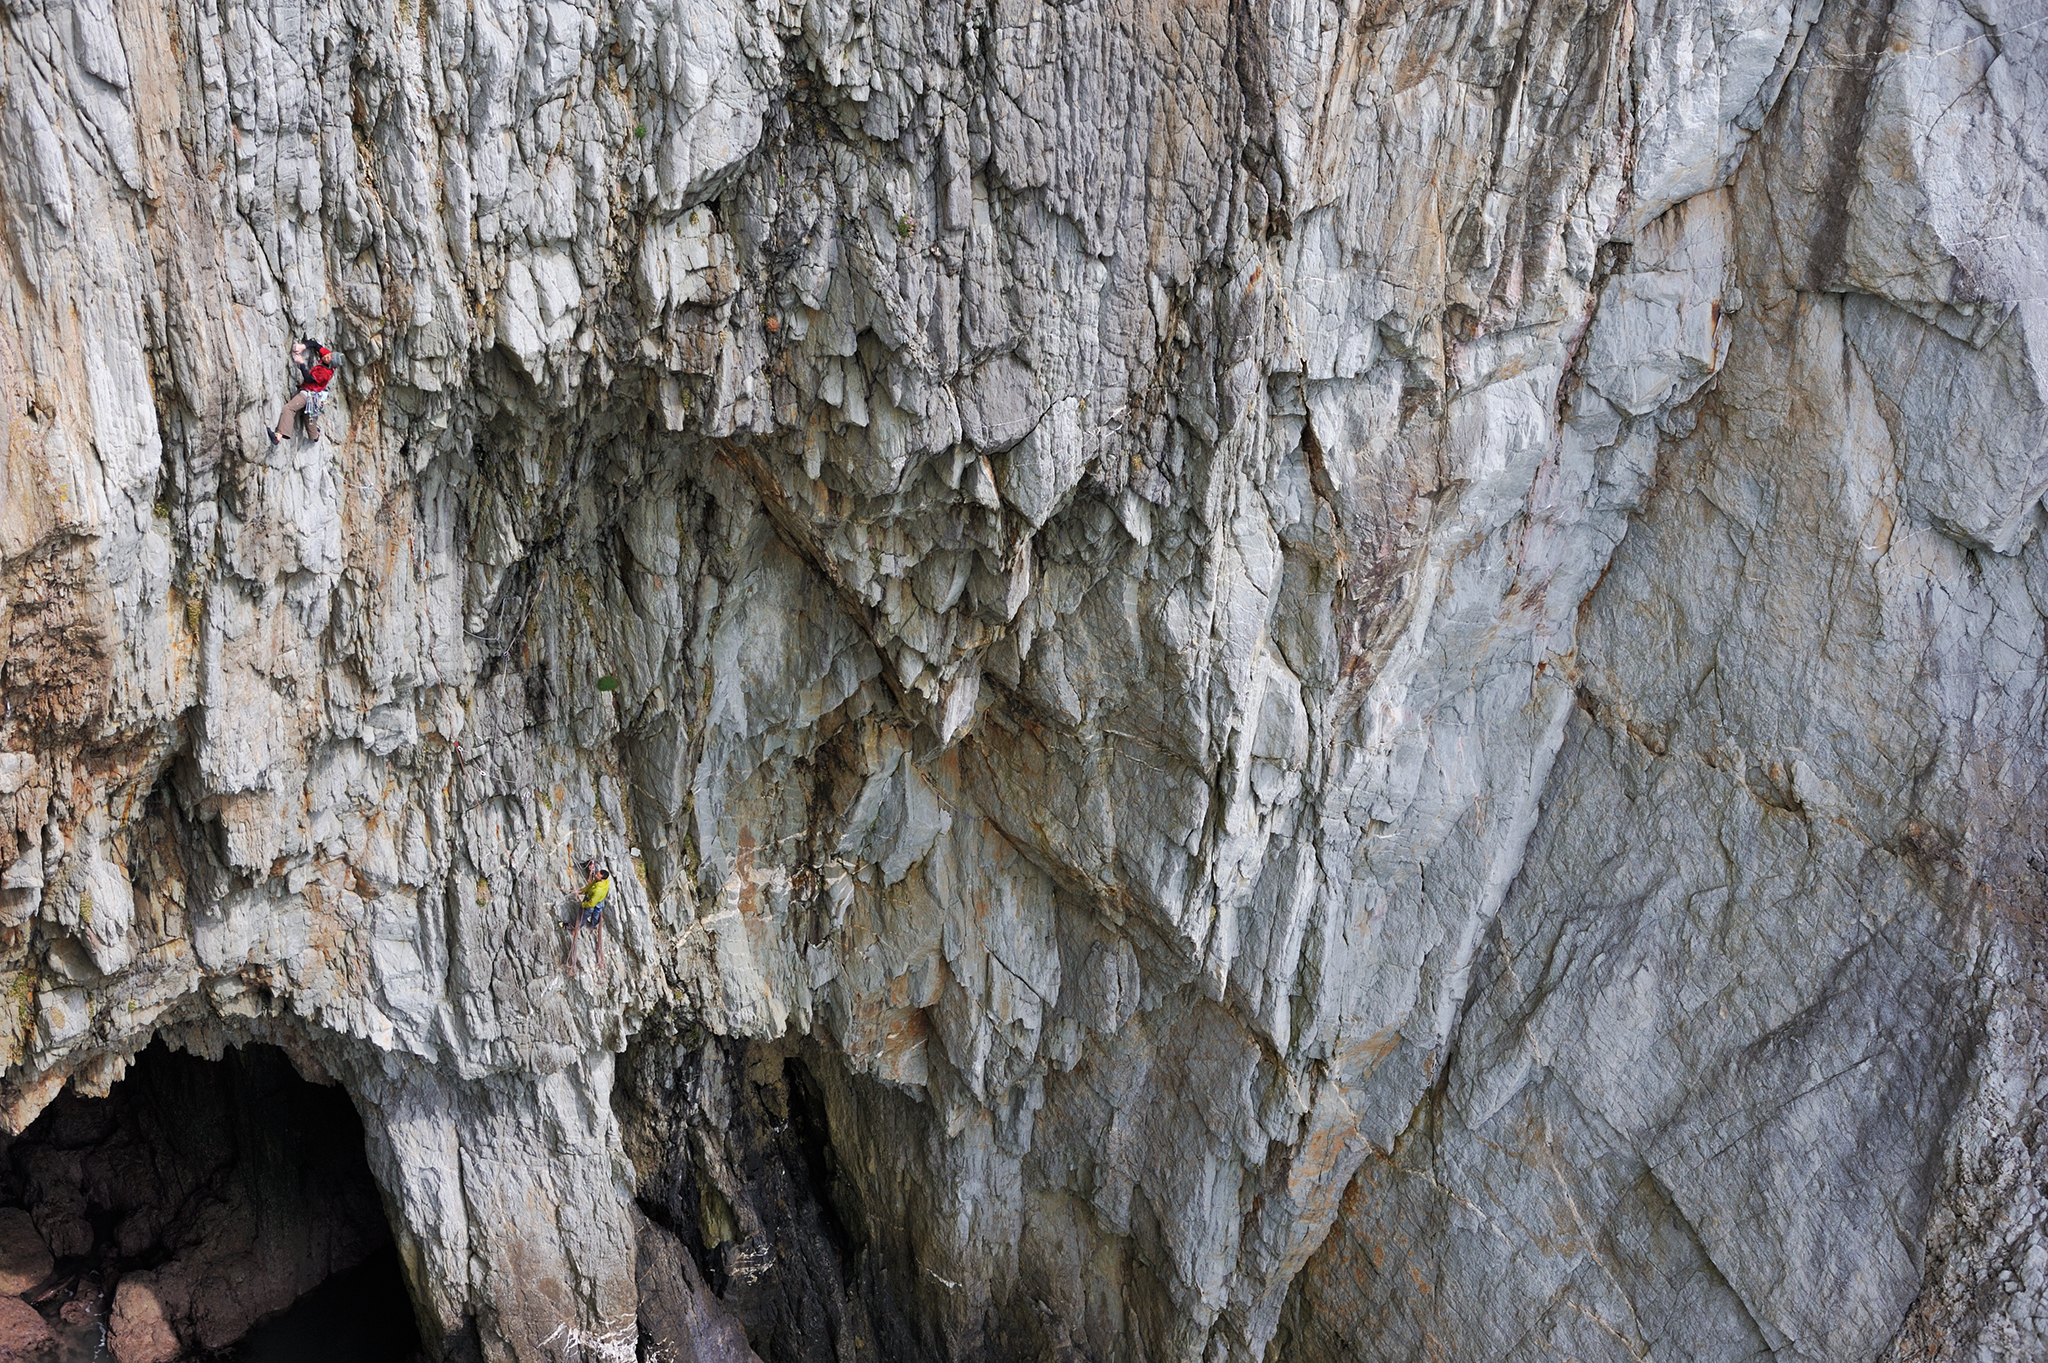 Nico Favresse and Nick Bullock on  Mister Softy  E6 5b, 6b, 6a, Wen Zawn, Gogarth, North Wales